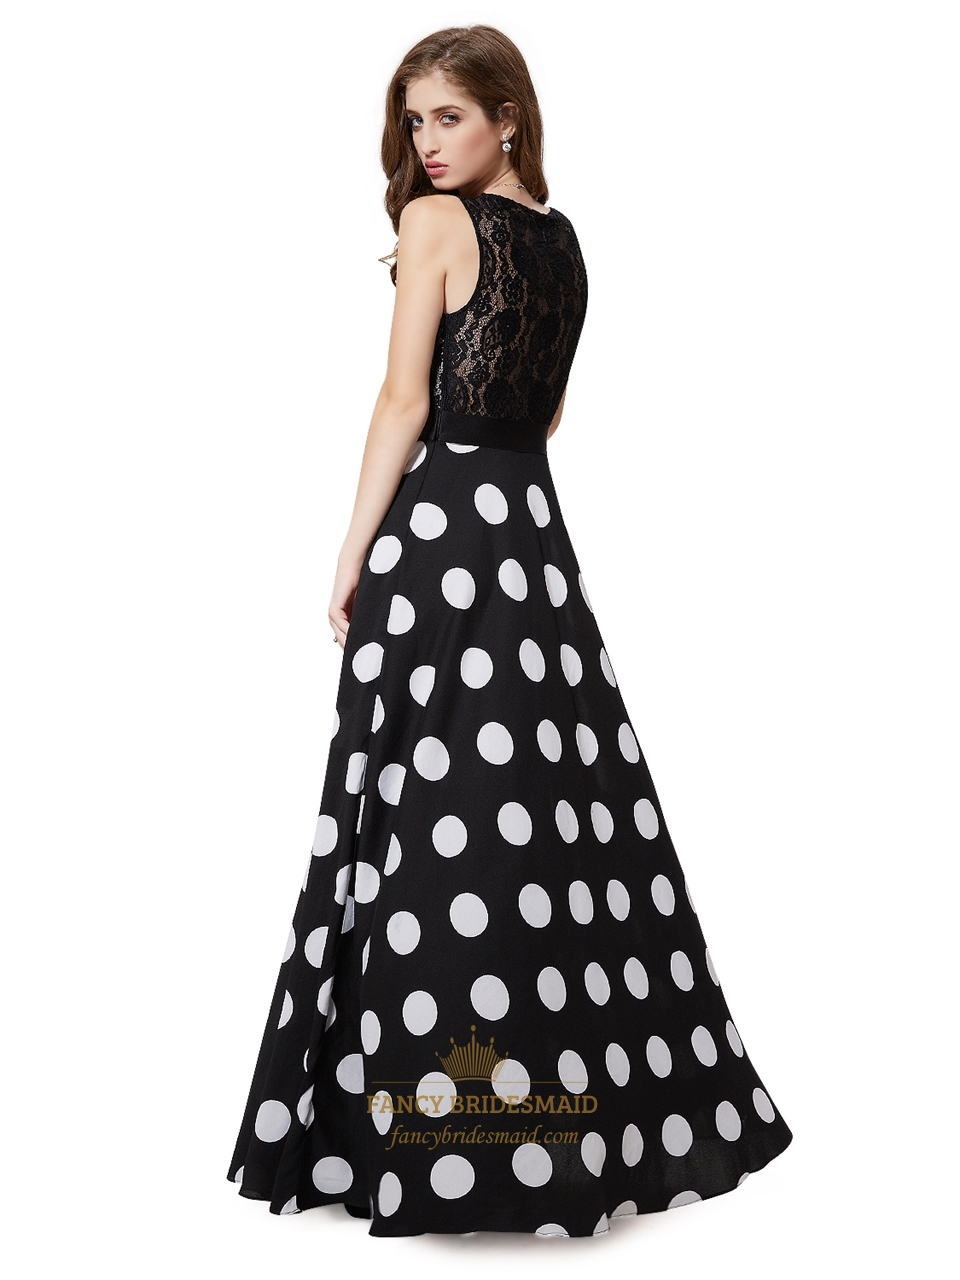 """""""SOUGHT-AFTER DOTS Just because you're seeking cocktail dresses, shirt dresses, and twofer dresses doesn't mean you can't also be searching for polka dot dresses!ModCloth's women's dresses combine desires, representing the gamut of silhouettes and mixing a myriad of prints."""